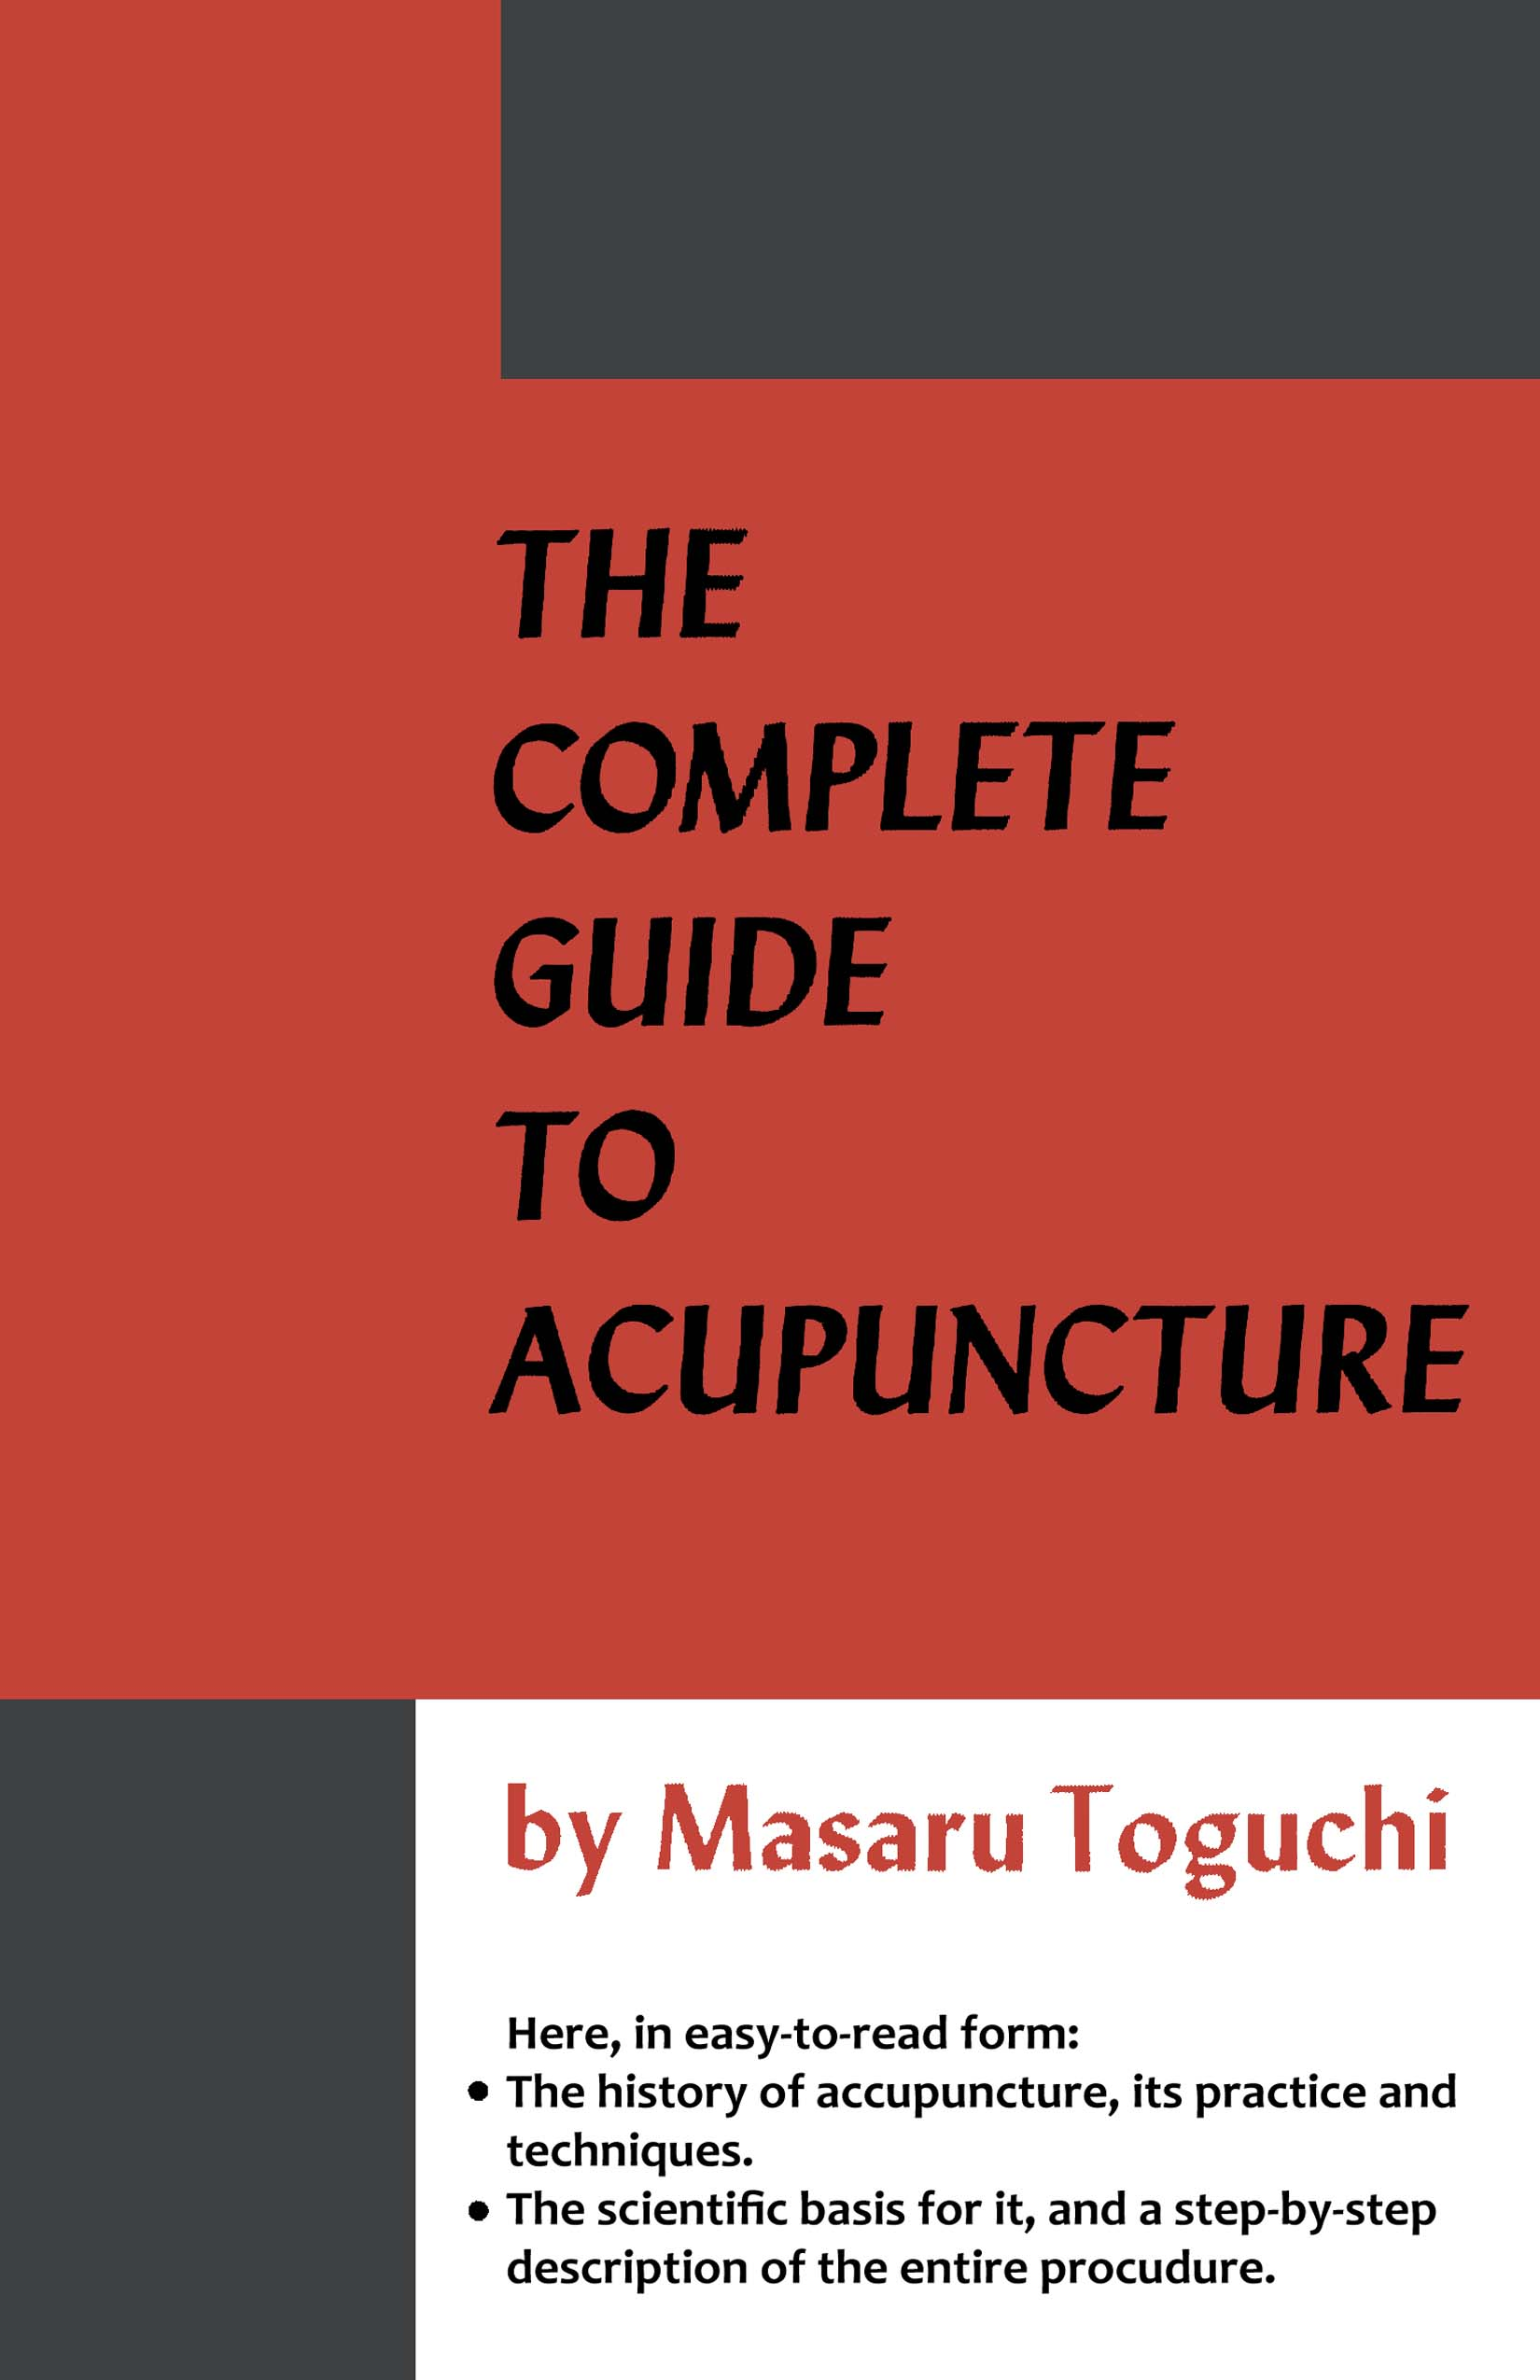 The Complete Guide to Acupuncture